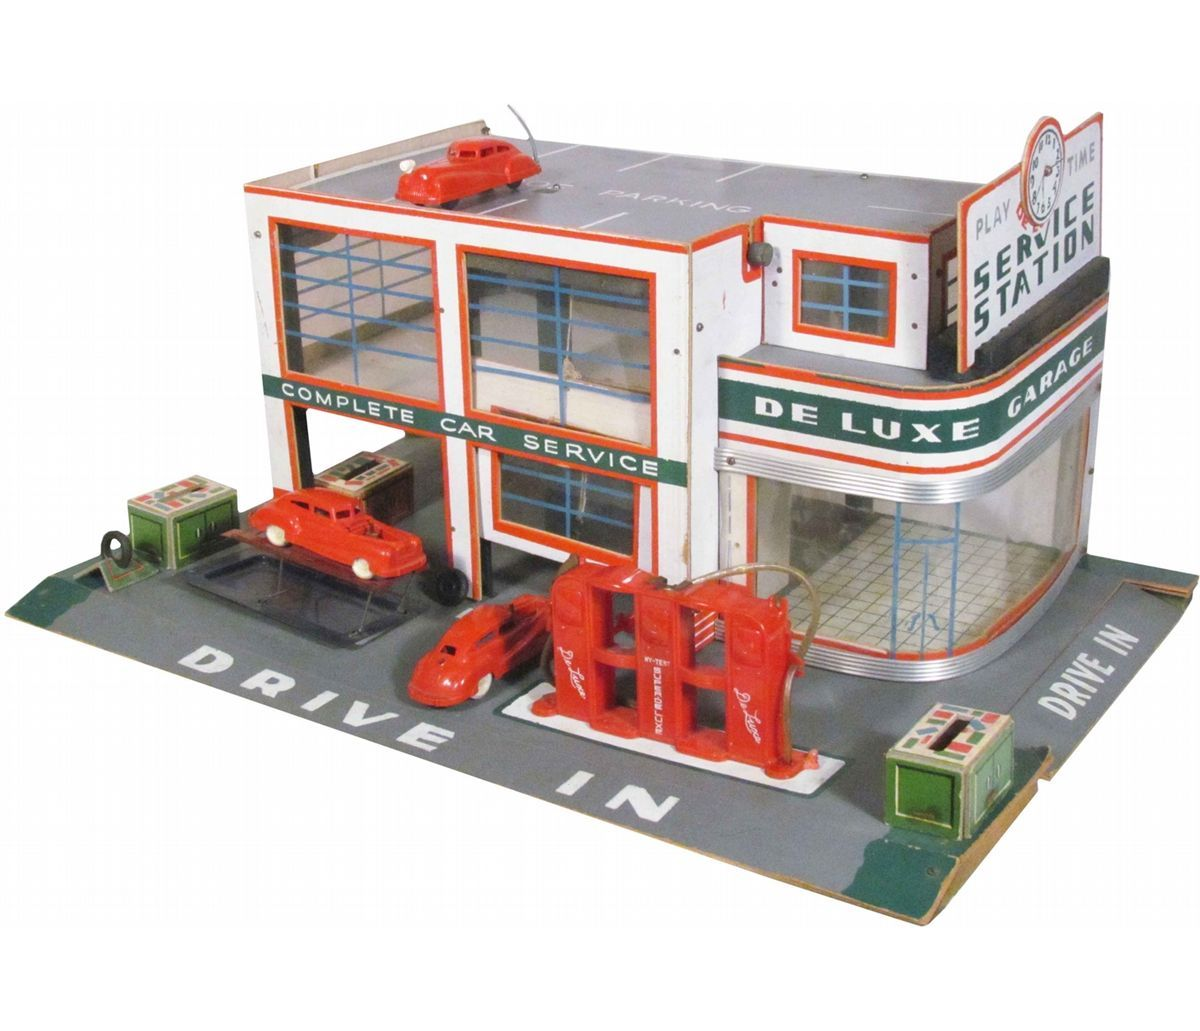 1940's Toy Keystone Deluxe Service Station. Excellent all